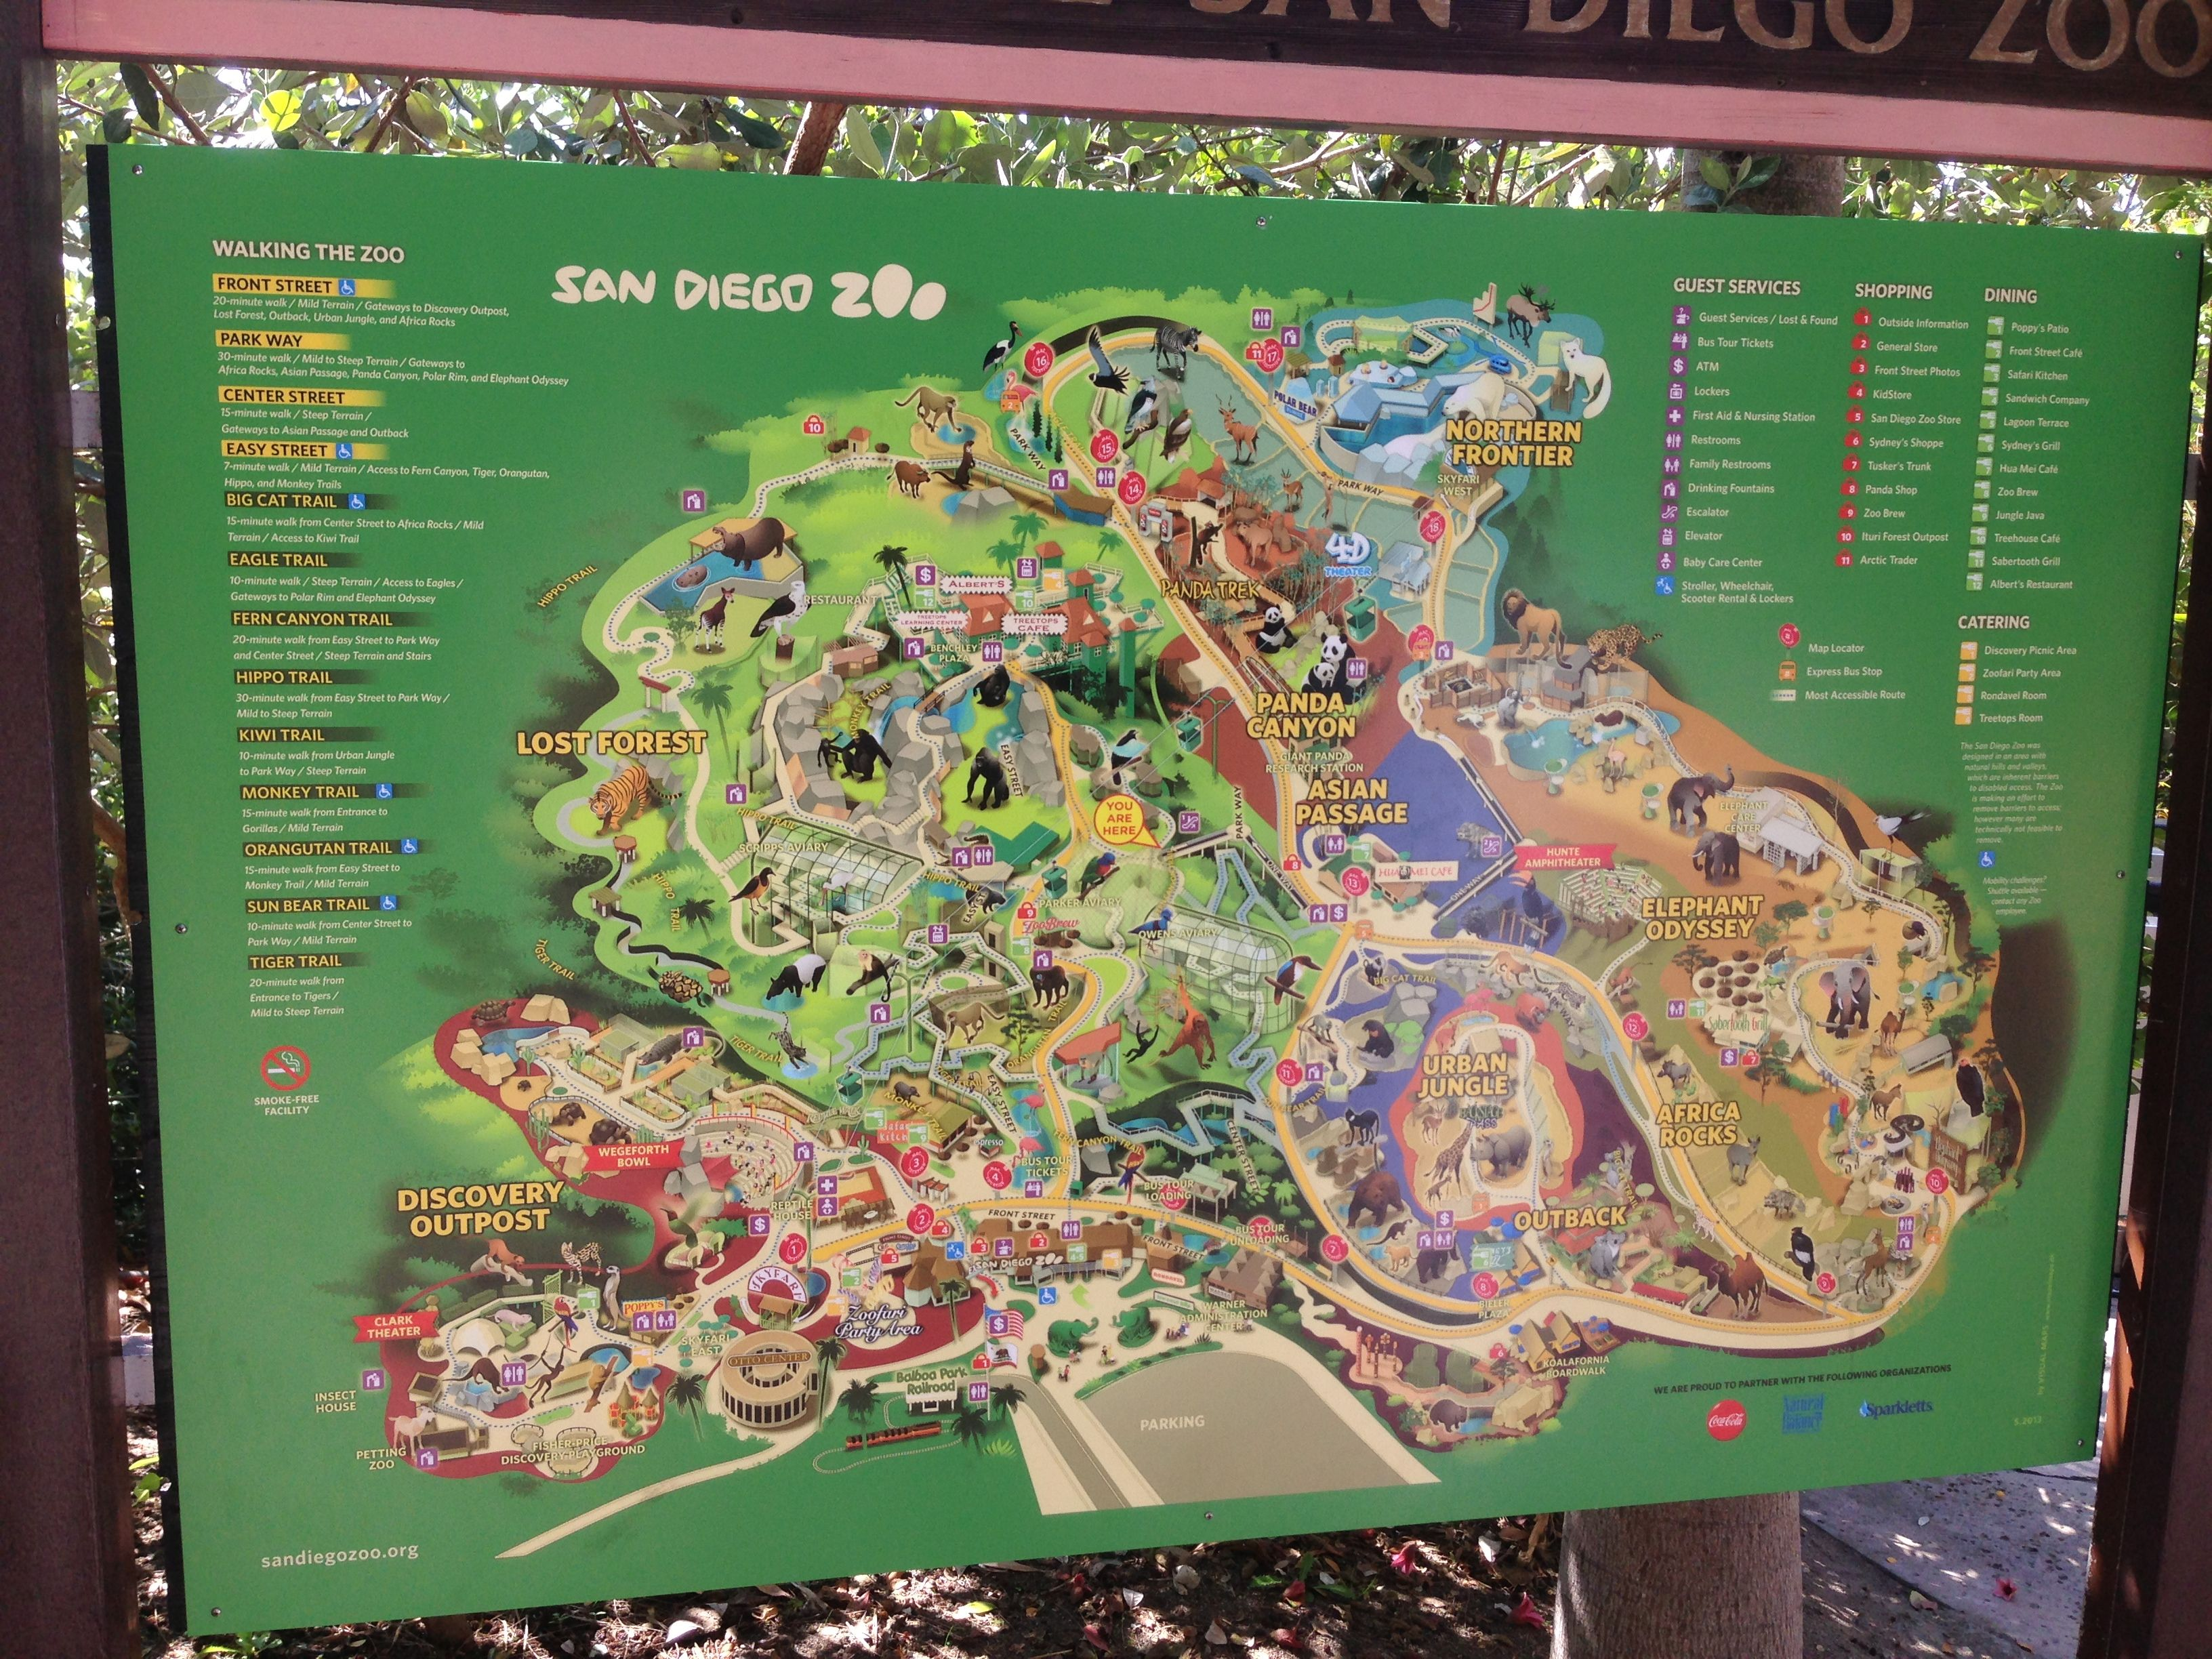 SanDiego Zoo map USA California august 2013 Observations